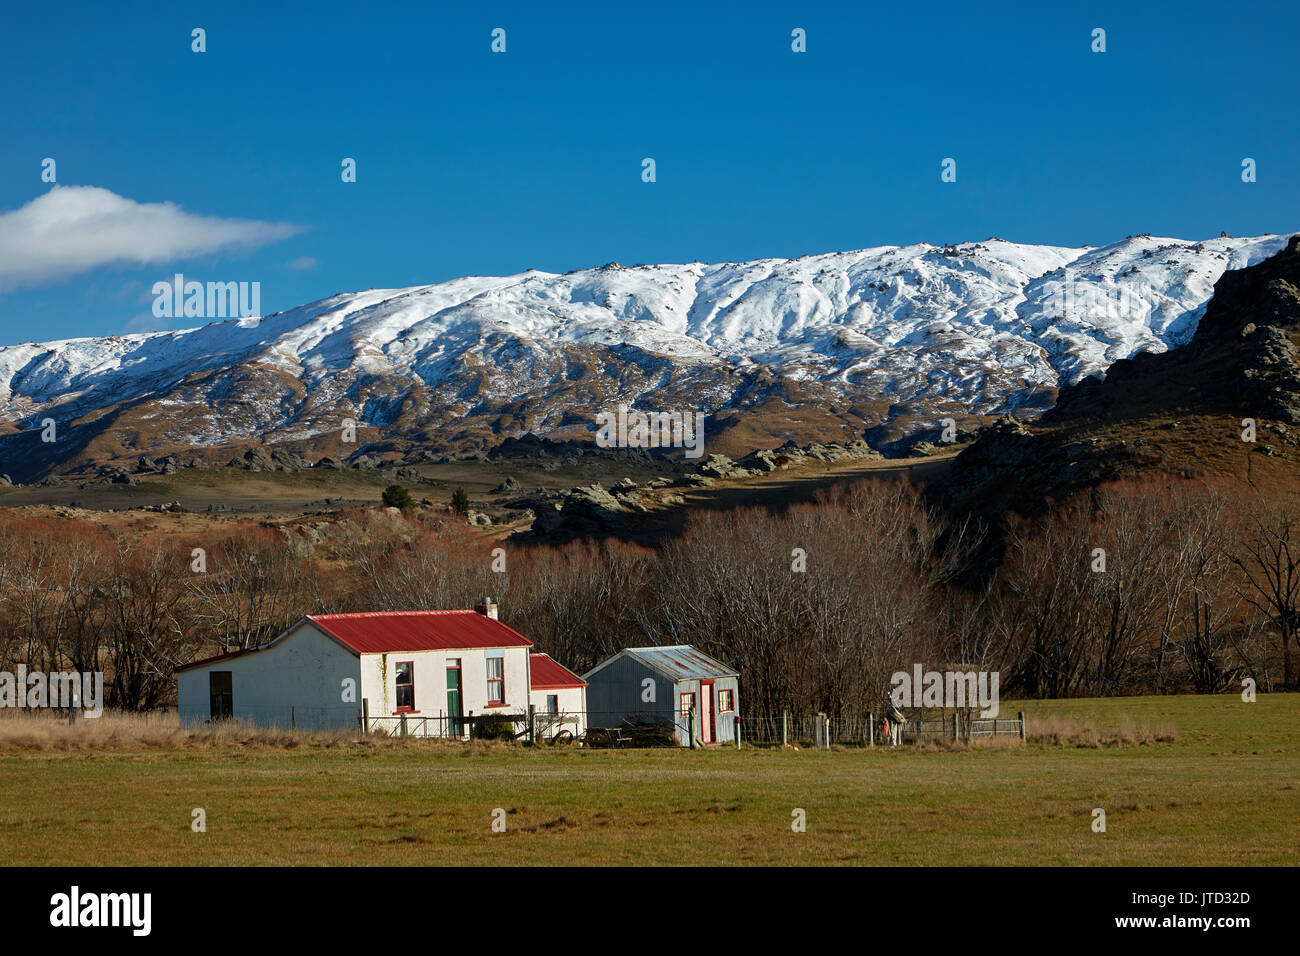 Old cottages and Rock and Pillar Range, Sutton, near Middlemarch, Strath Taieri, Otago, South Island, New Zealand - Stock Image